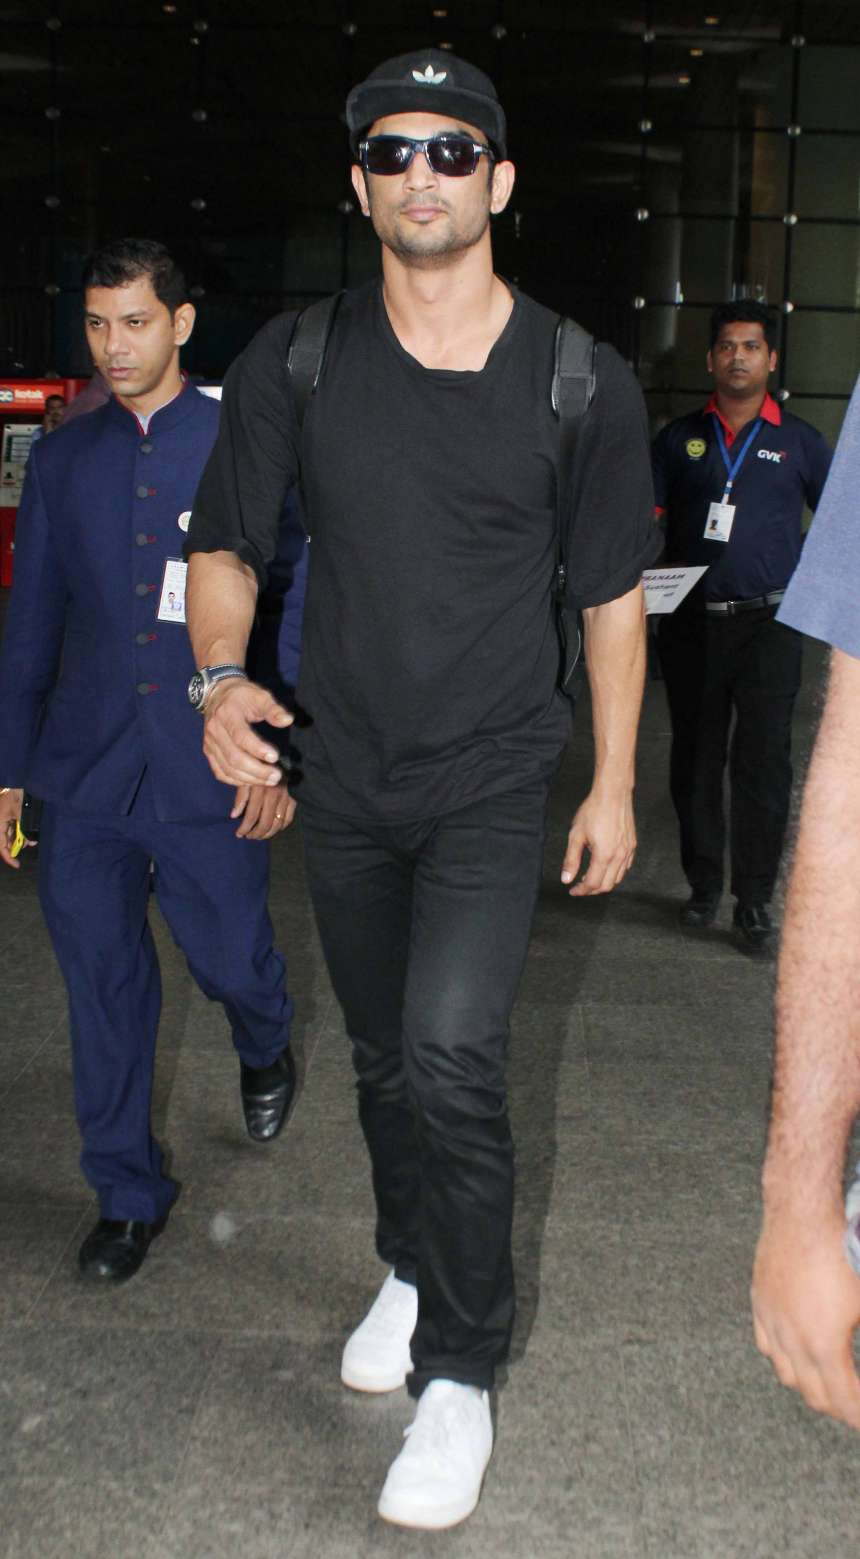 Sushant Singh Rajput is as kick-back as always. Wearing a black round neck tee and a pair of black trousers, he's looking as suave as he can. He didn't forget to pose a thumbs up for the paparazzi.